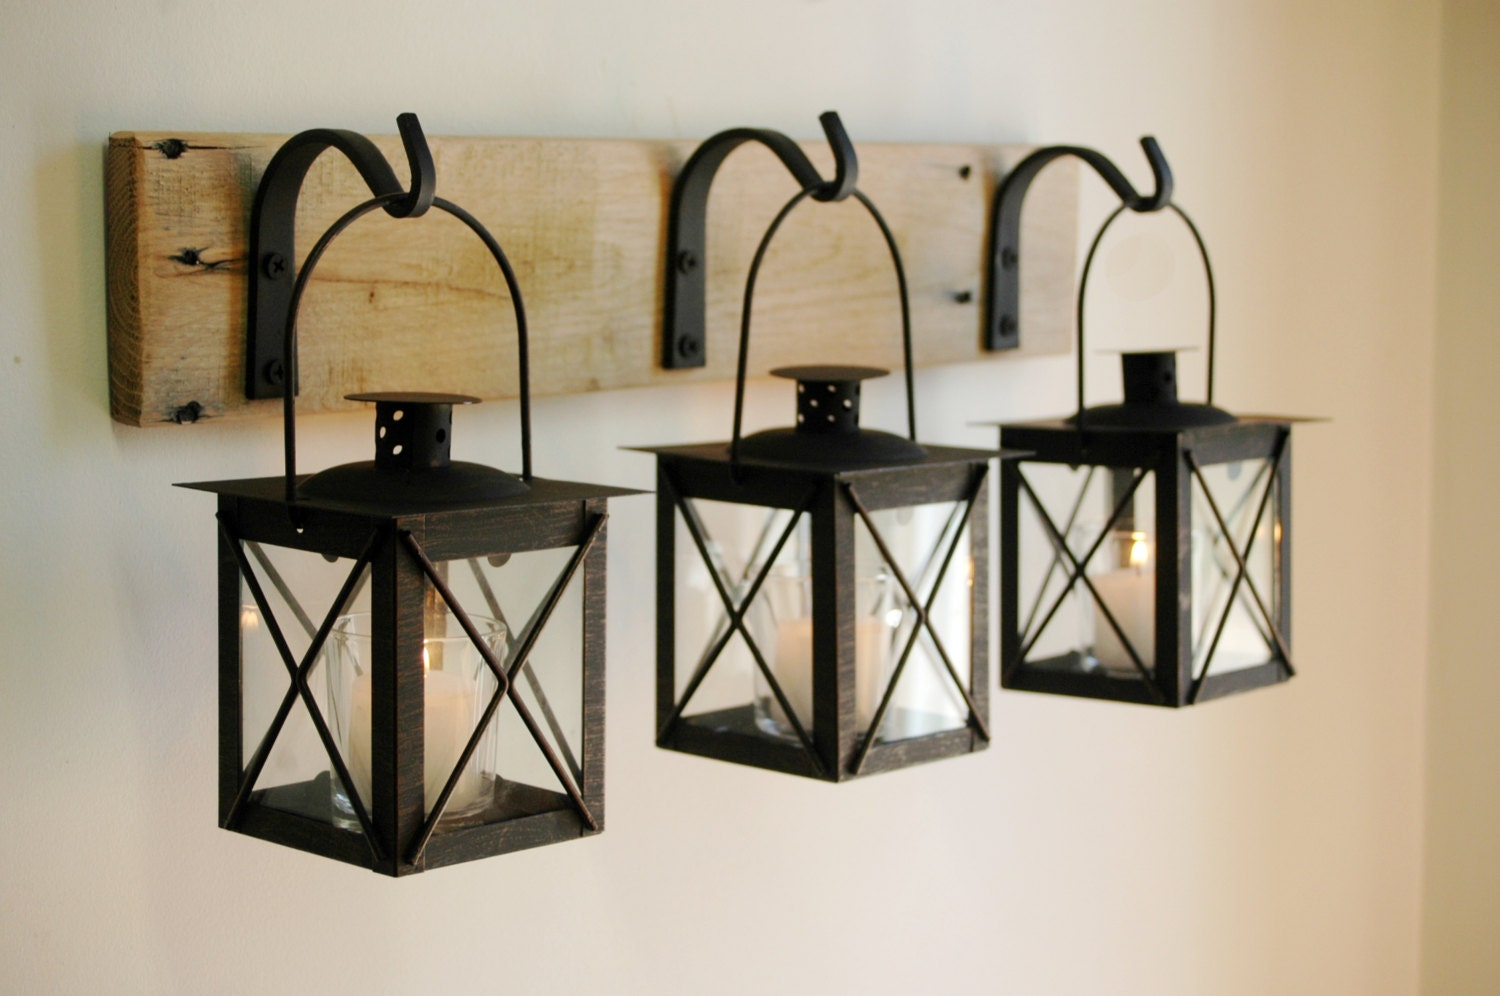 Long Wrought Iron Wall Decor Black Lantern Trio Wall Decor Home Decor Rustic Decor